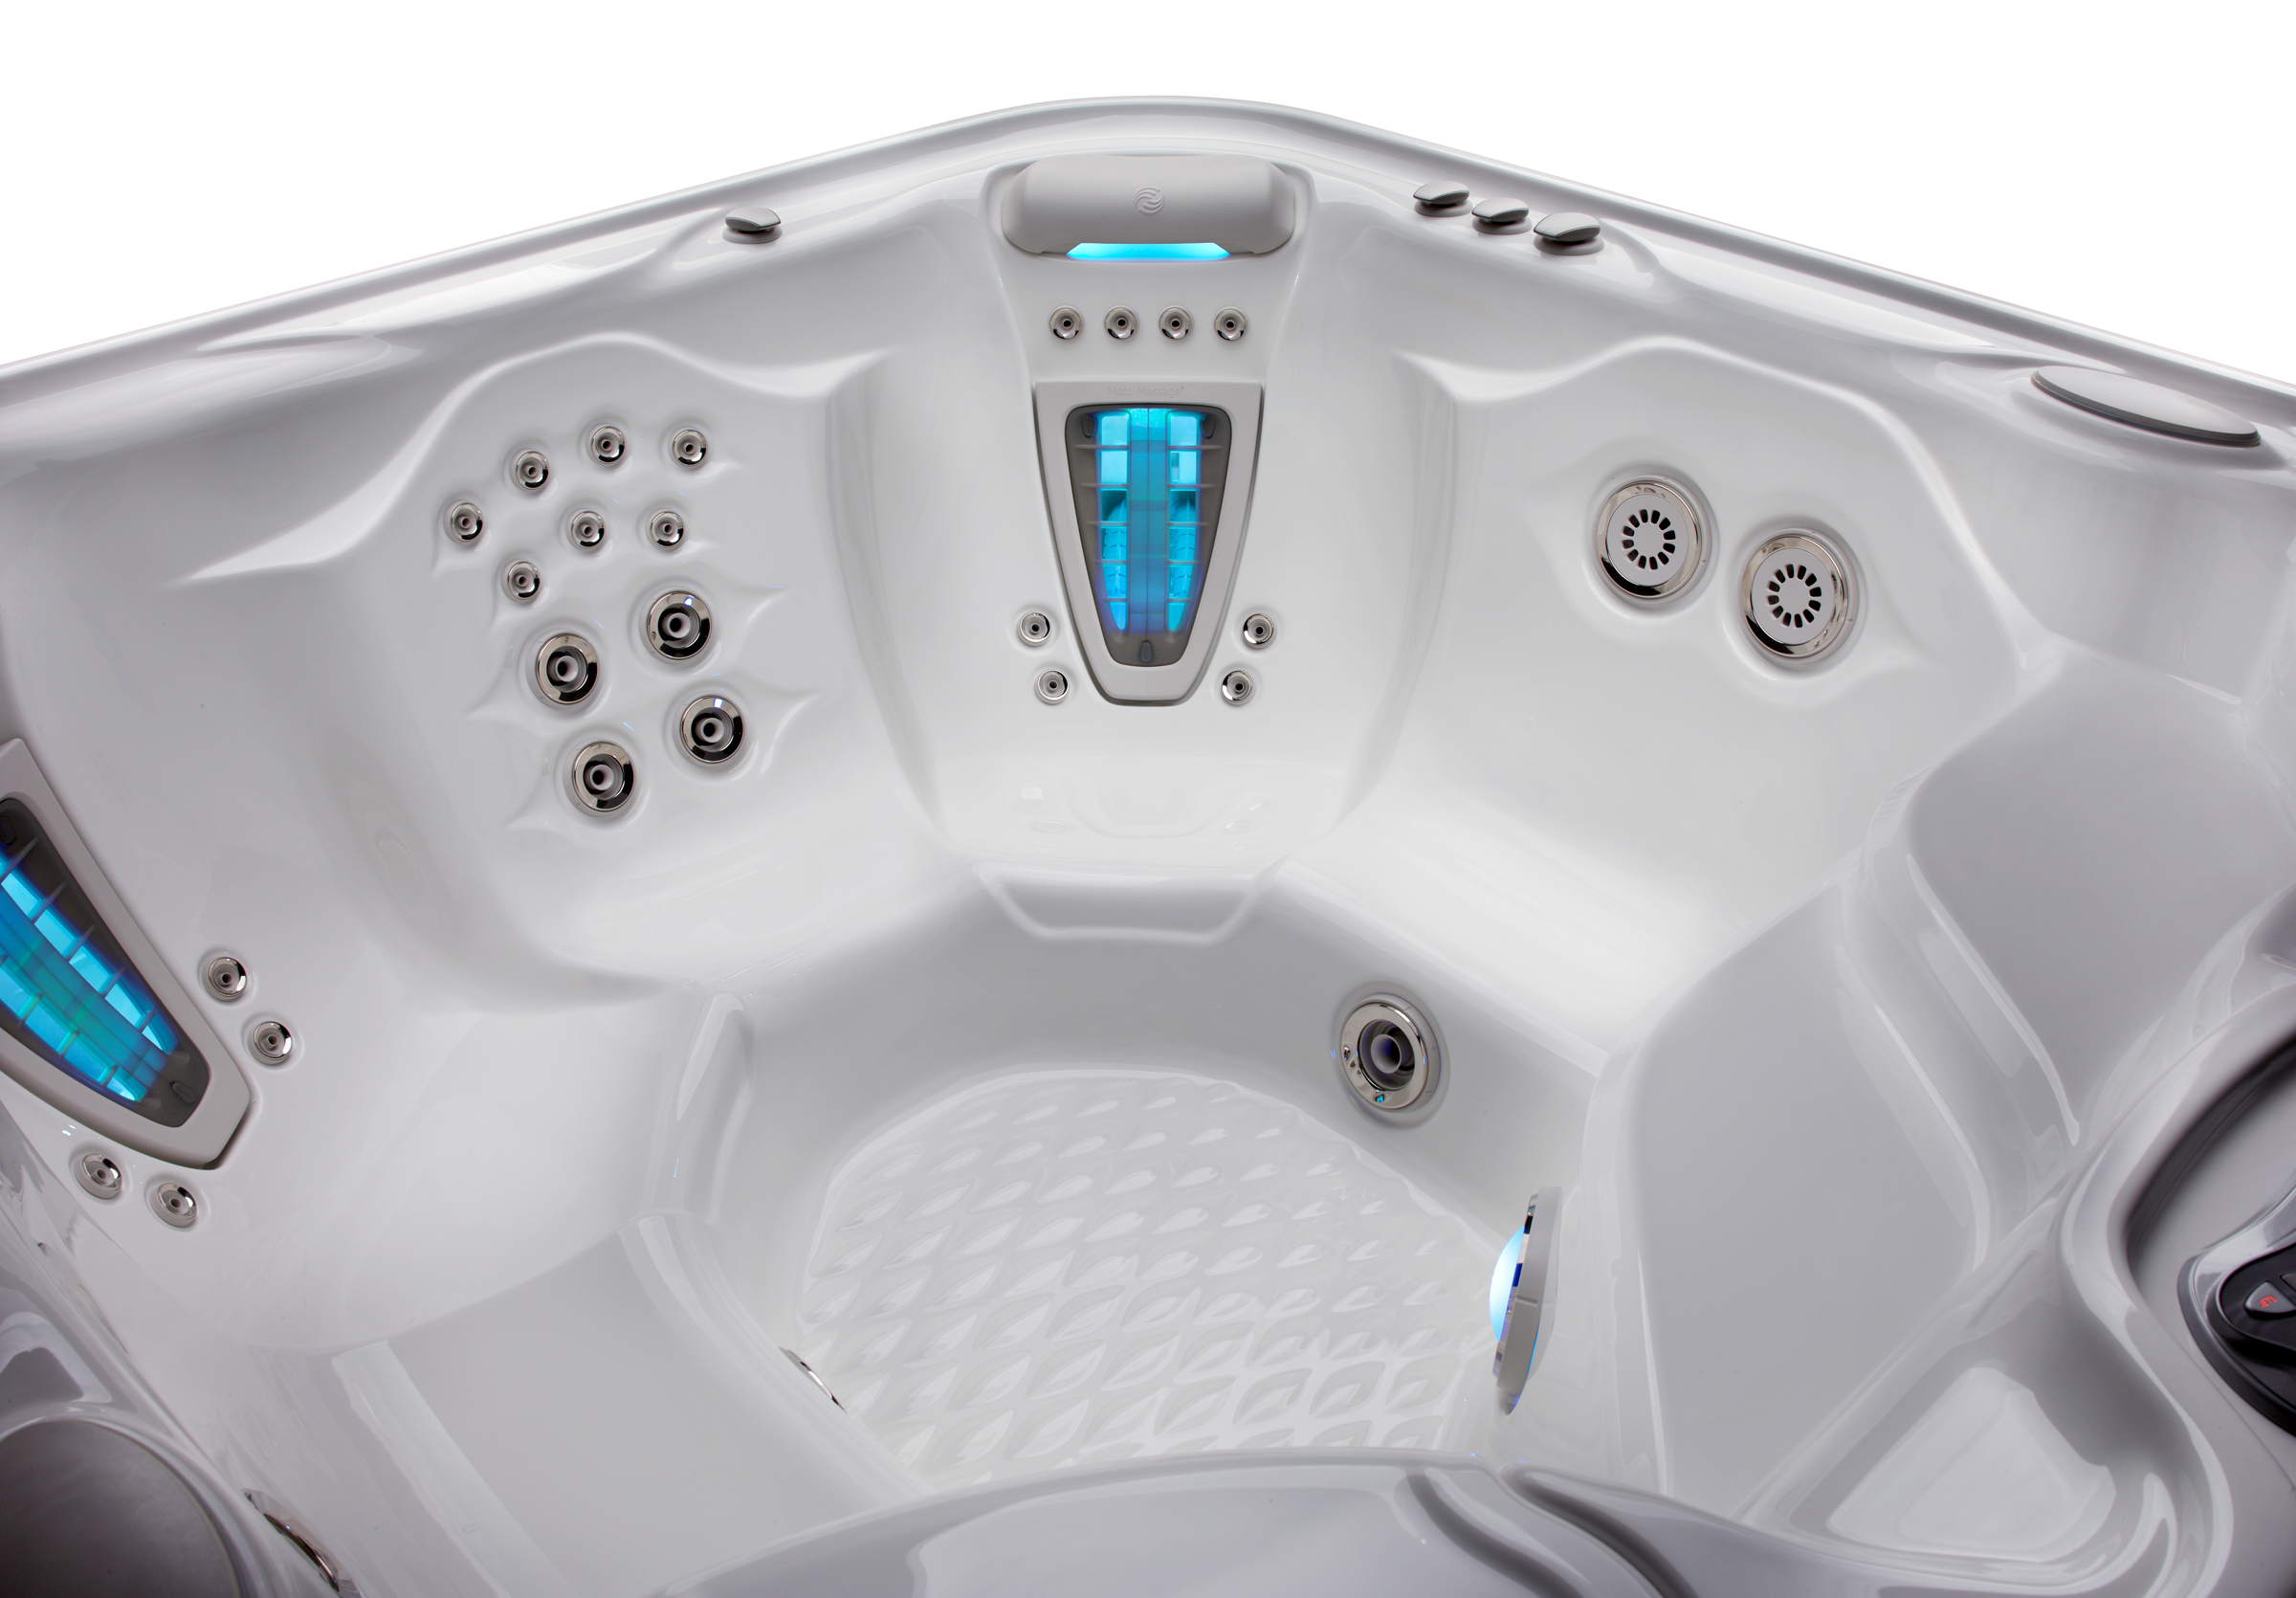 Hot Spring Highlife Vanguard 6 Person Hot Tub - Gallery